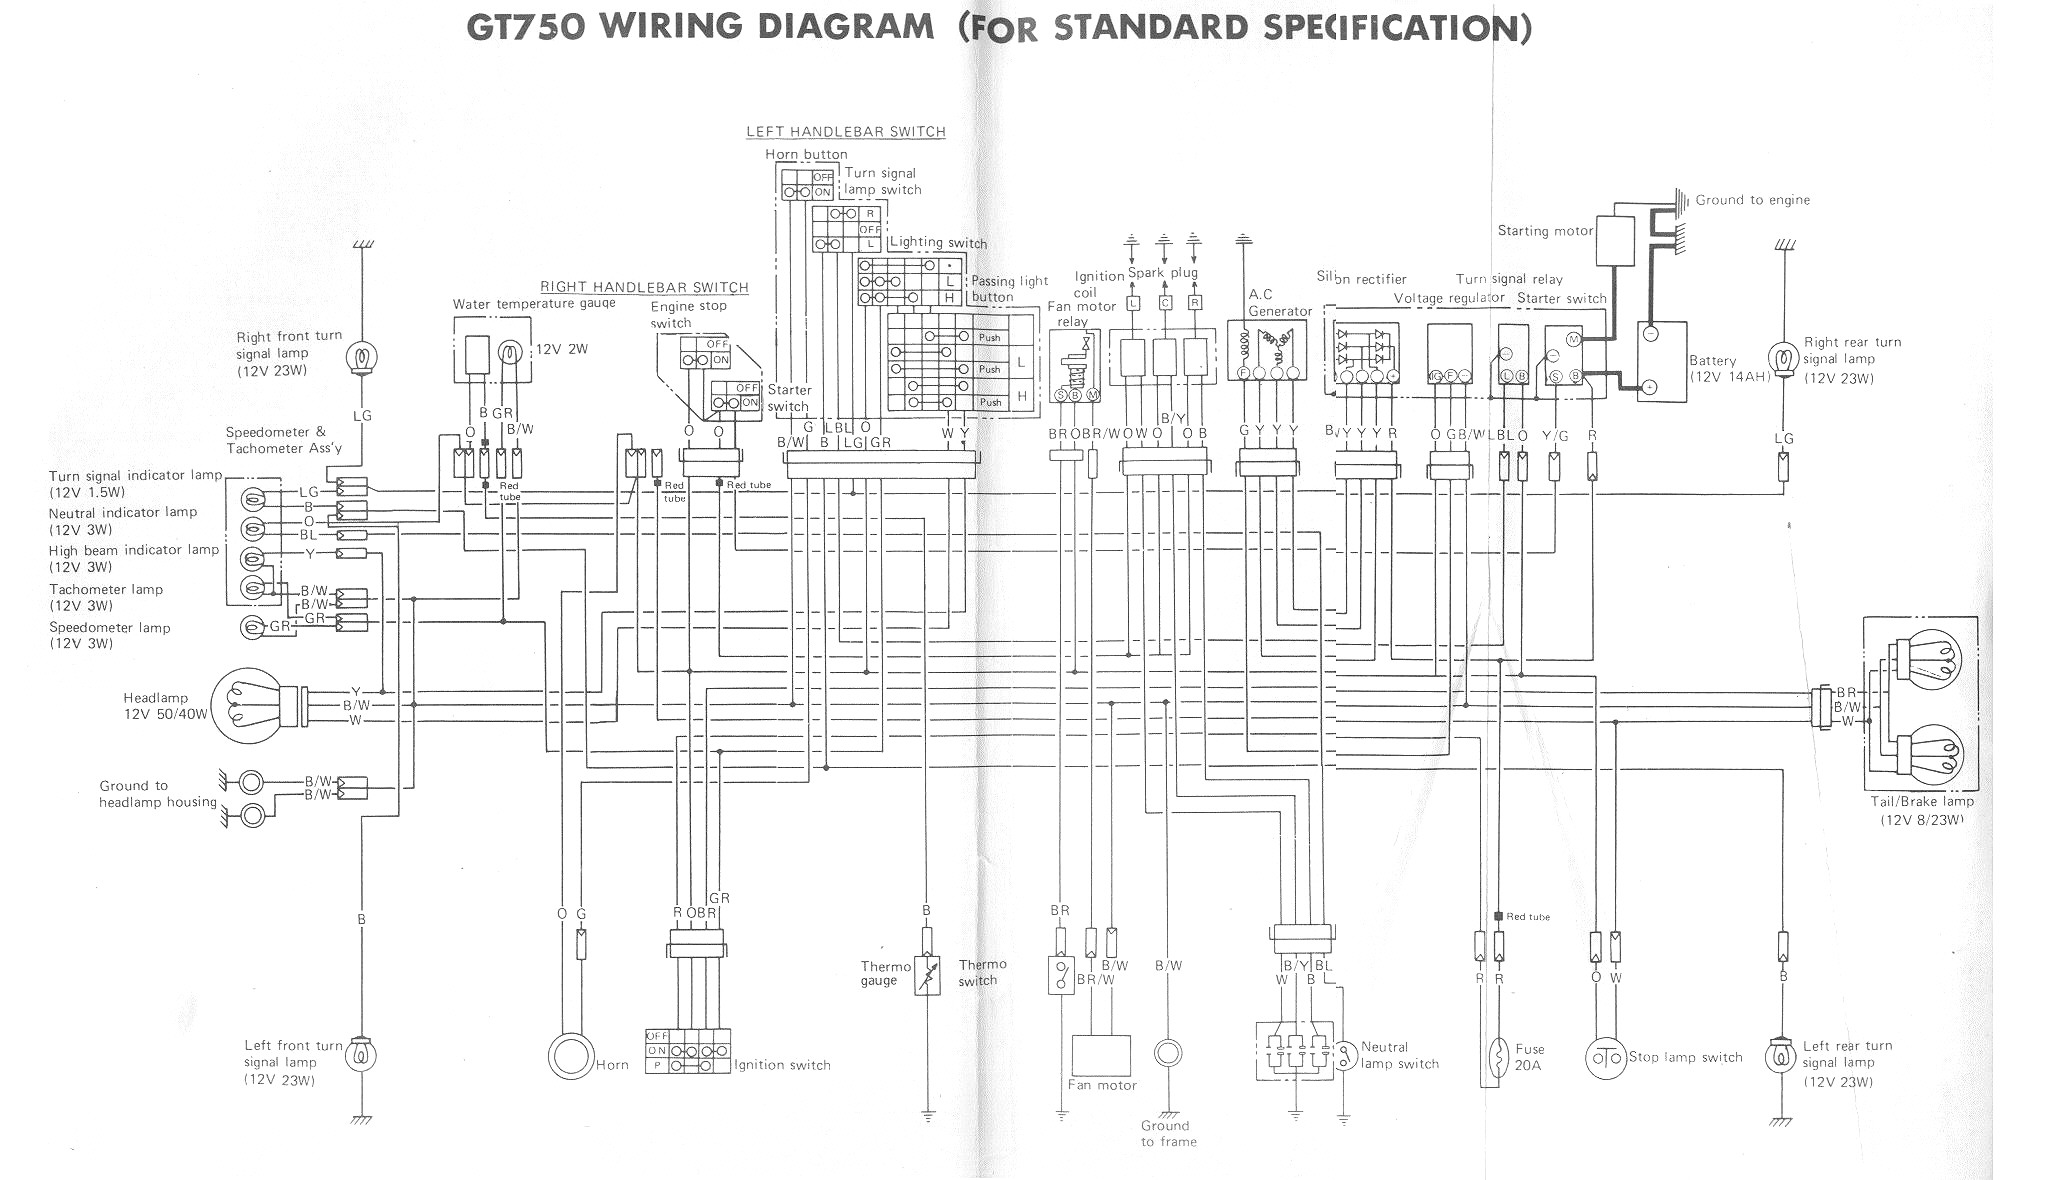 garmin quest wiring diagram garmin auto wiring diagram schematic yamaha 750 wire harness 2000 jeep cherokee classic fuse box layout on garmin quest wiring diagram